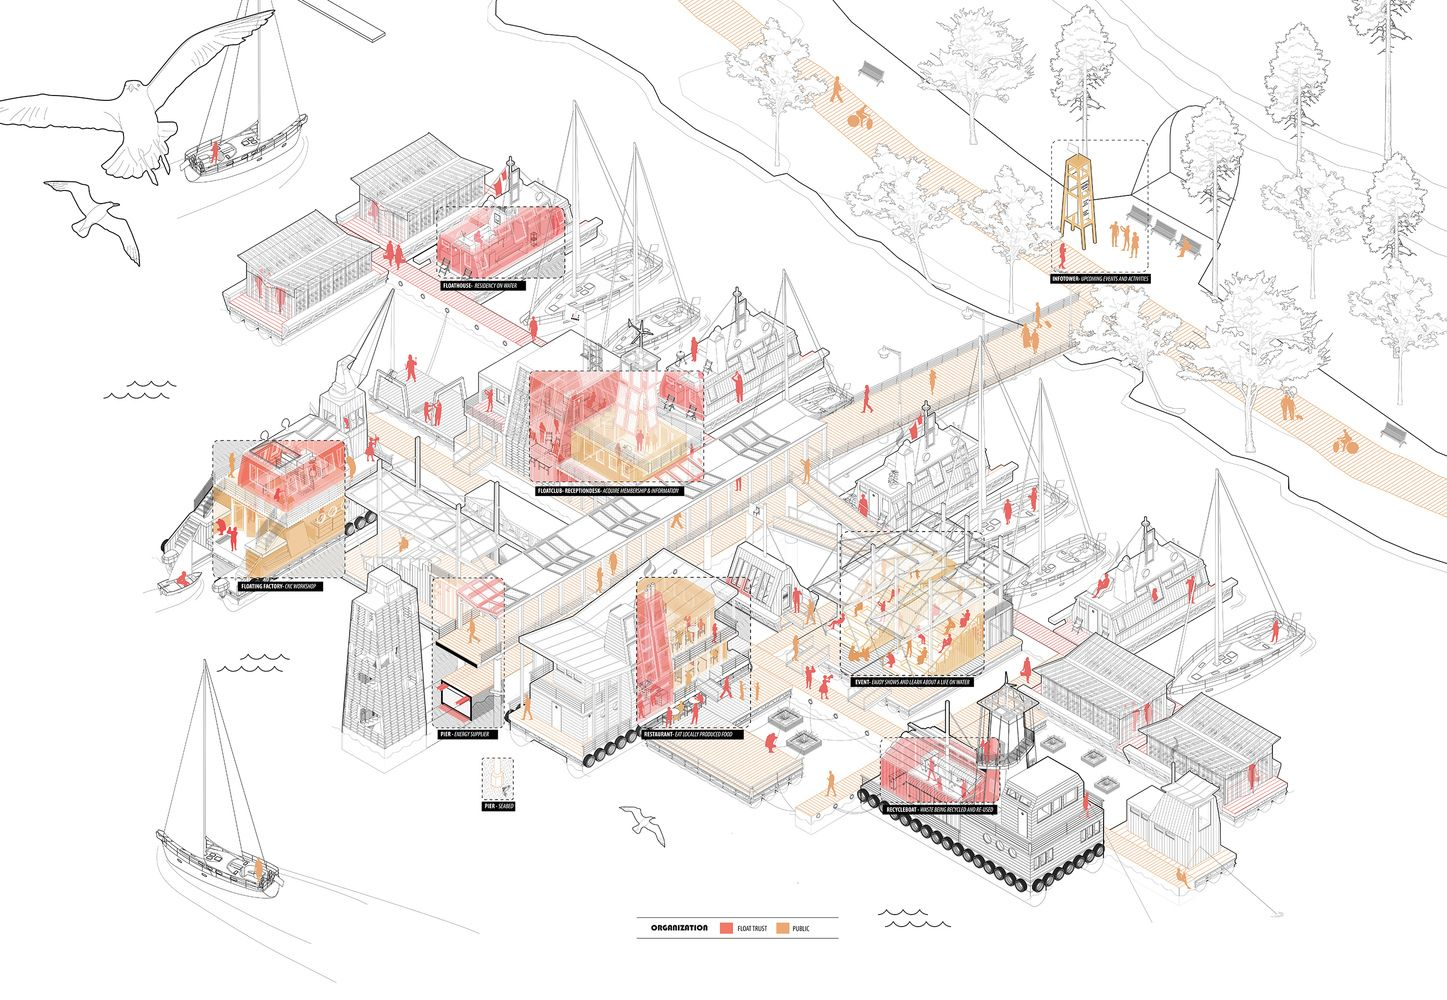 Gallery Of Floathub Project Takes Aim At Sweden S Housing Crisis 3 Urban Design Diagram Architecture Presentation Architecture Panel